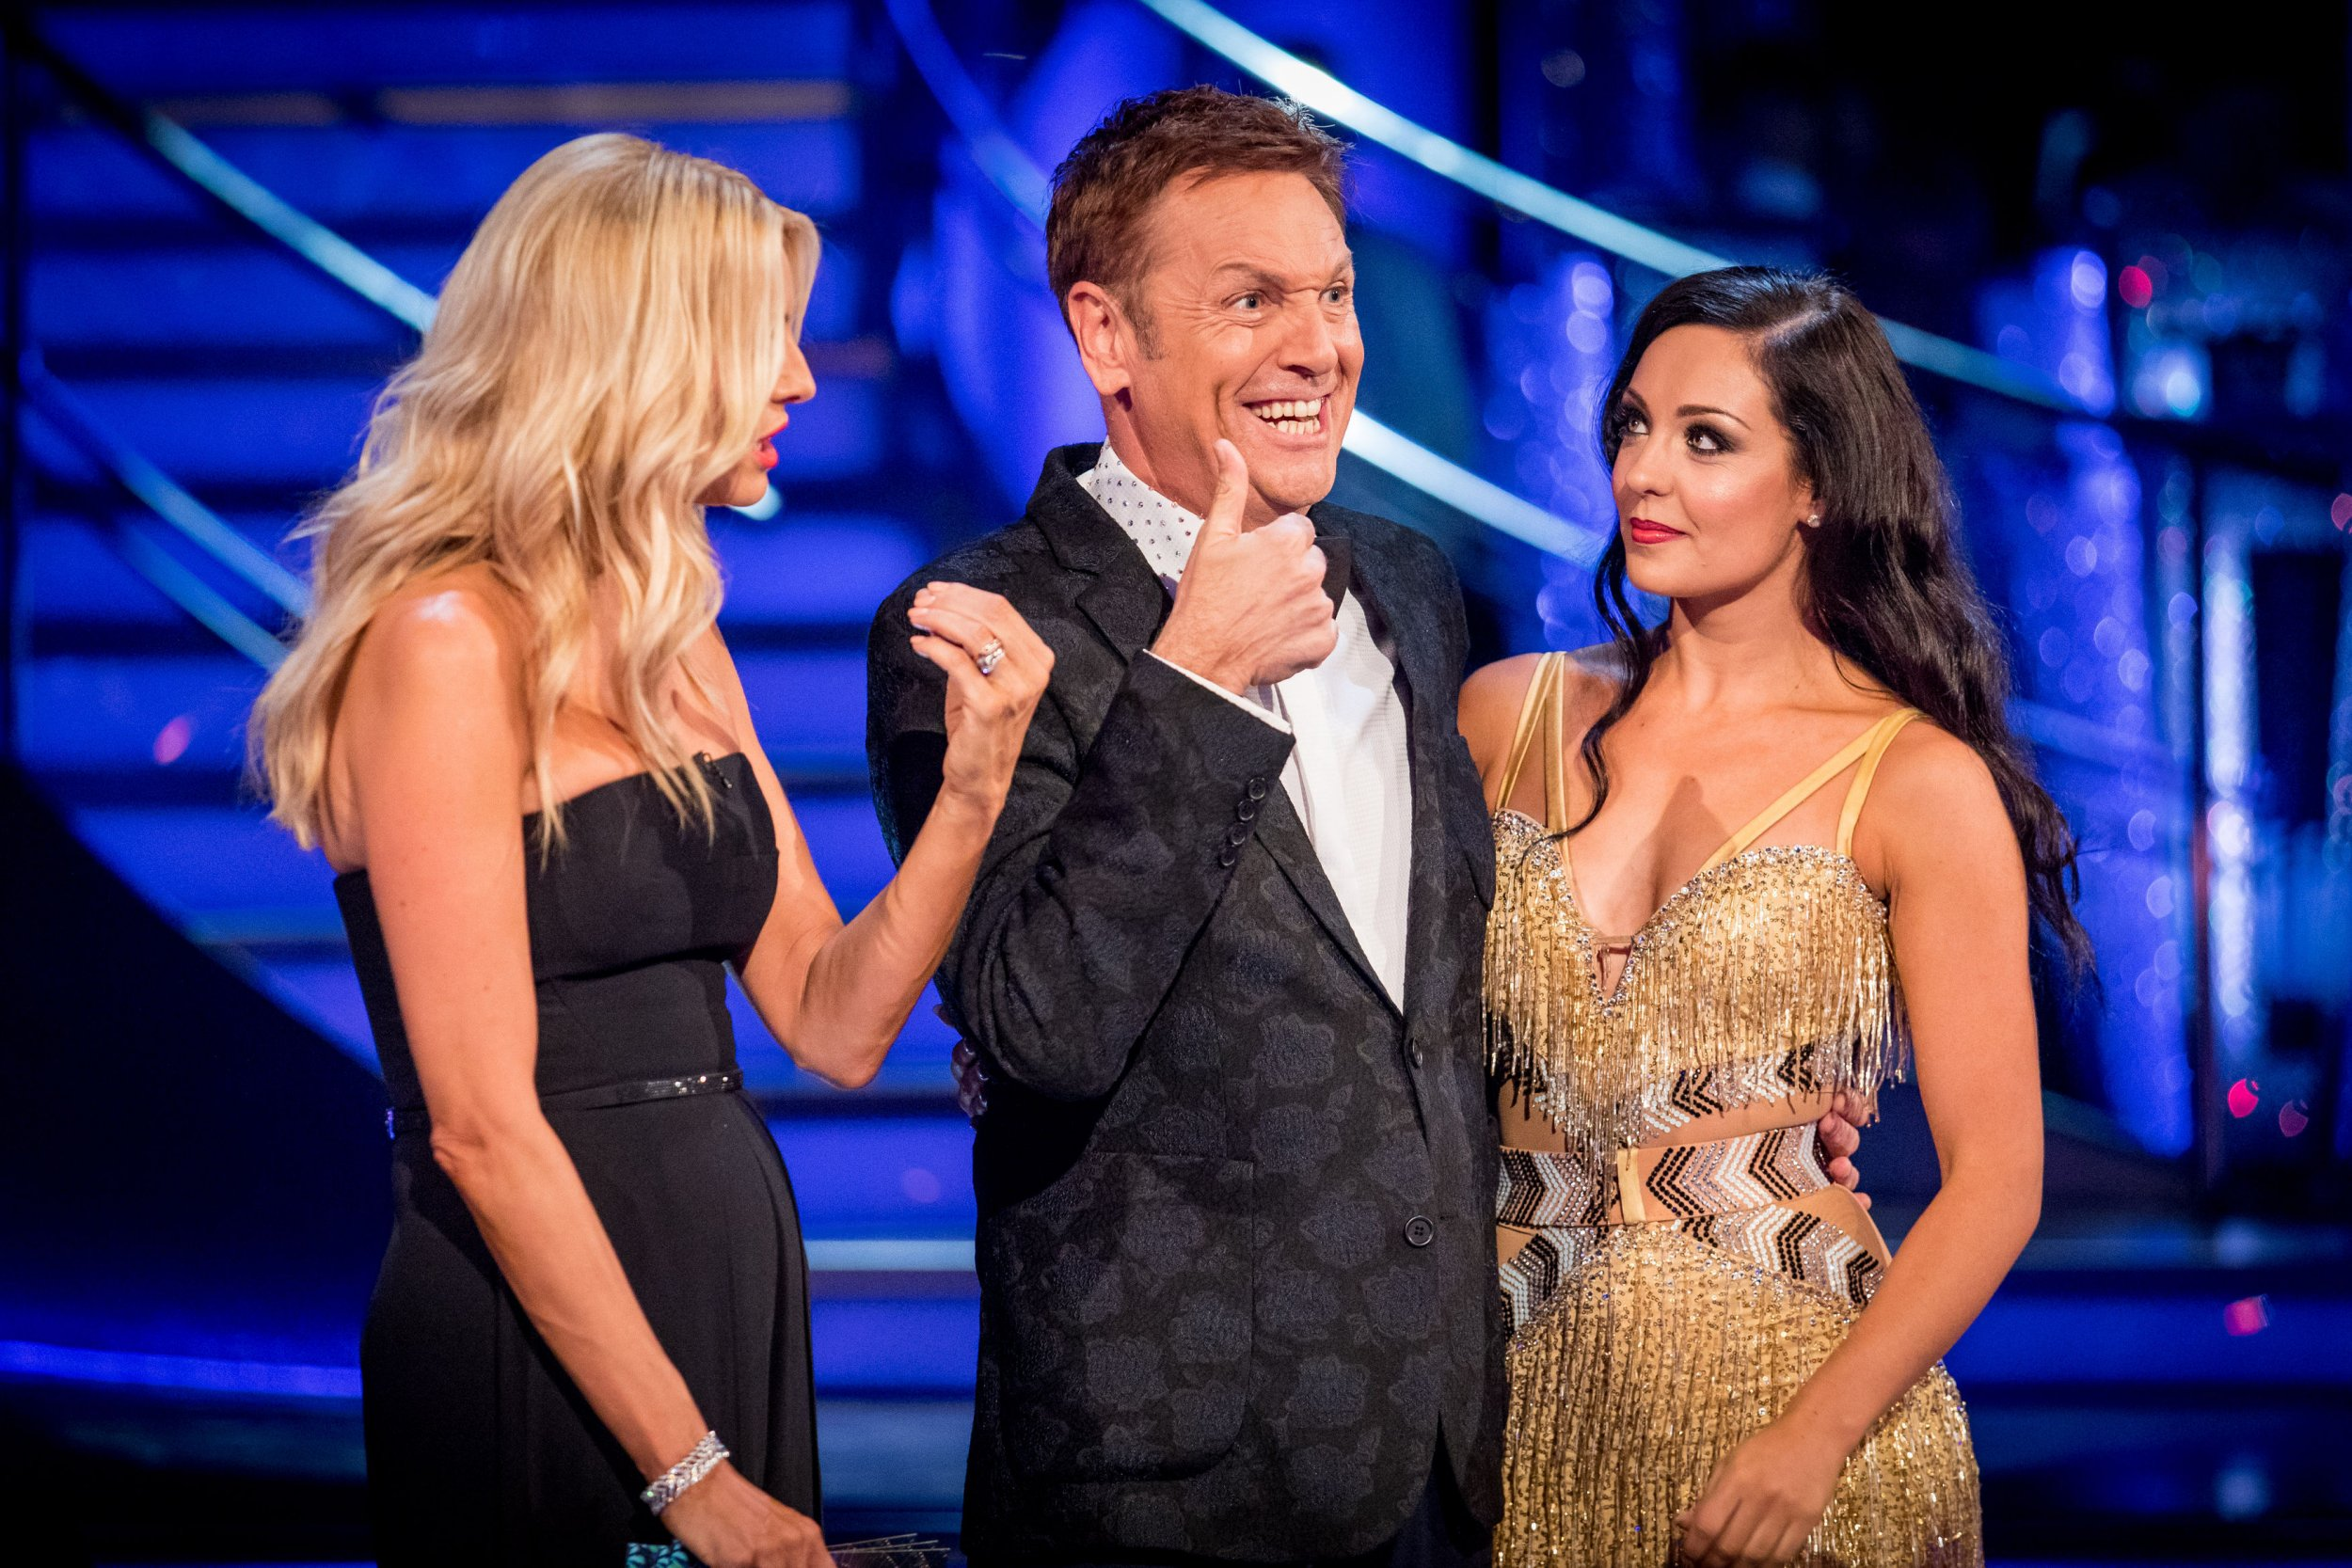 Brian Conley slams reports he is ready to leave Strictly Come Dancing as 'utter bulls***'